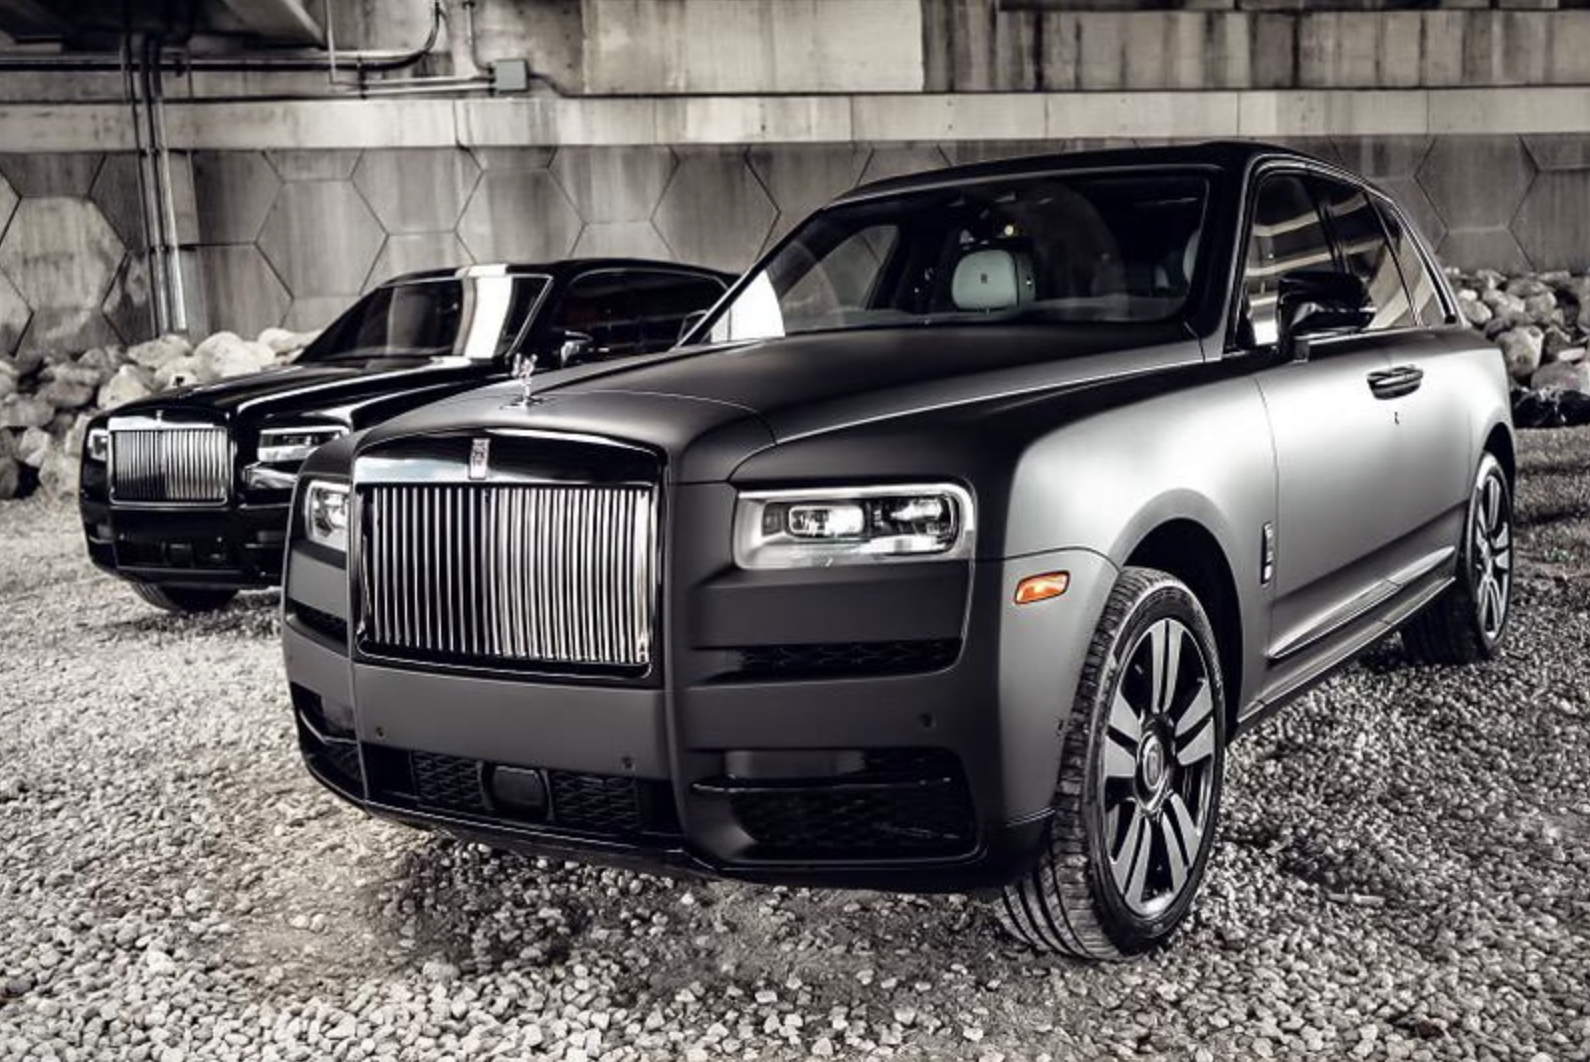 Image #7 of our  2021 ROLLS ROYCE CULLINAN - MATT BLACK    In Miami Fort Lauderdale Palm Beach South Florida